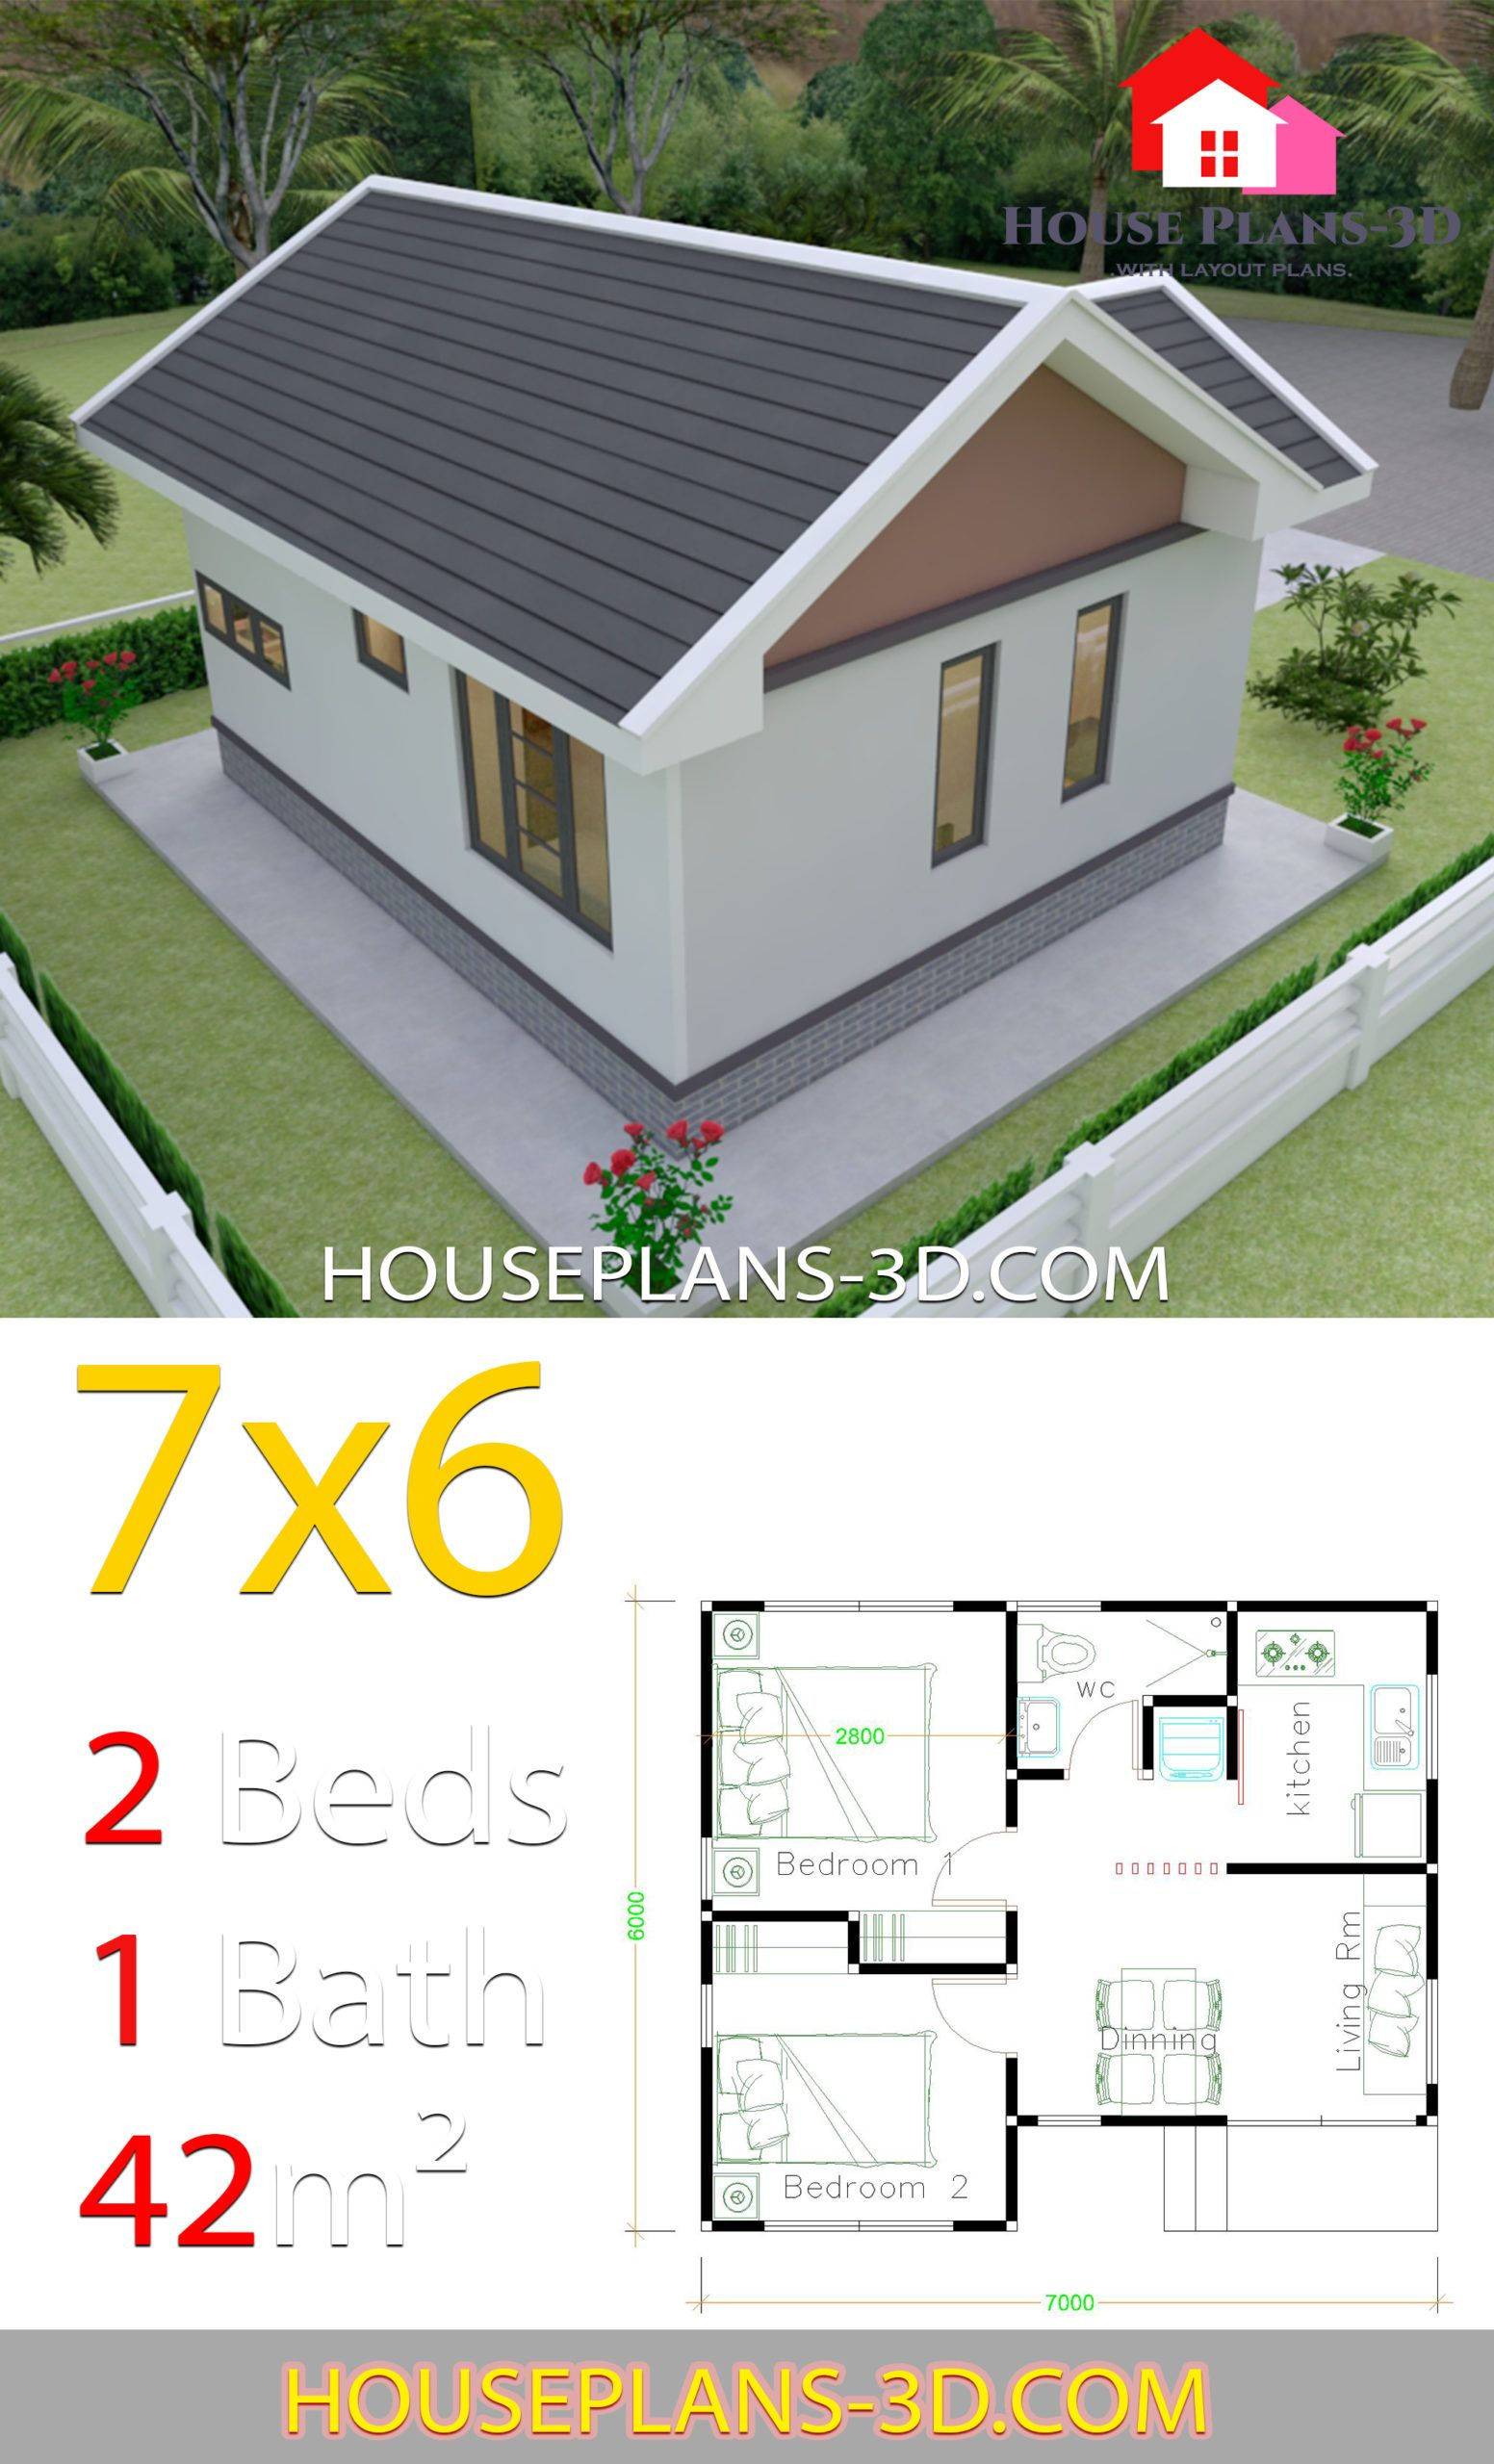 House Plans Design 7x6 With 2 Bedrooms Gable Roof House Plans 3d House Plans House Roof Gable Roof House